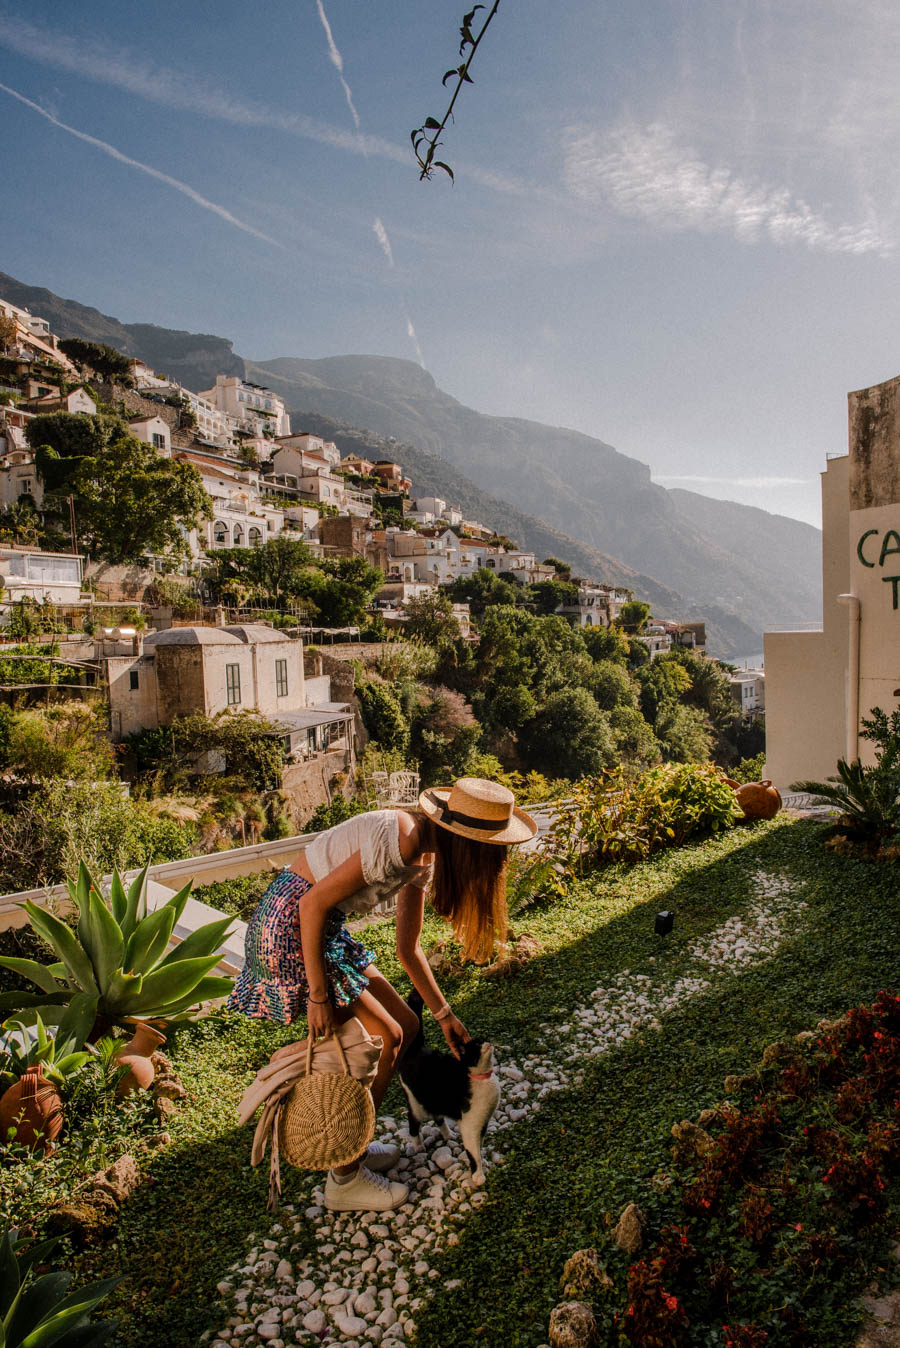 Positano has many amazing photo locations. Don't forget to take photos at your hotel in Positano. One of my most popular Instagram photos in Positano was taken at our hotel